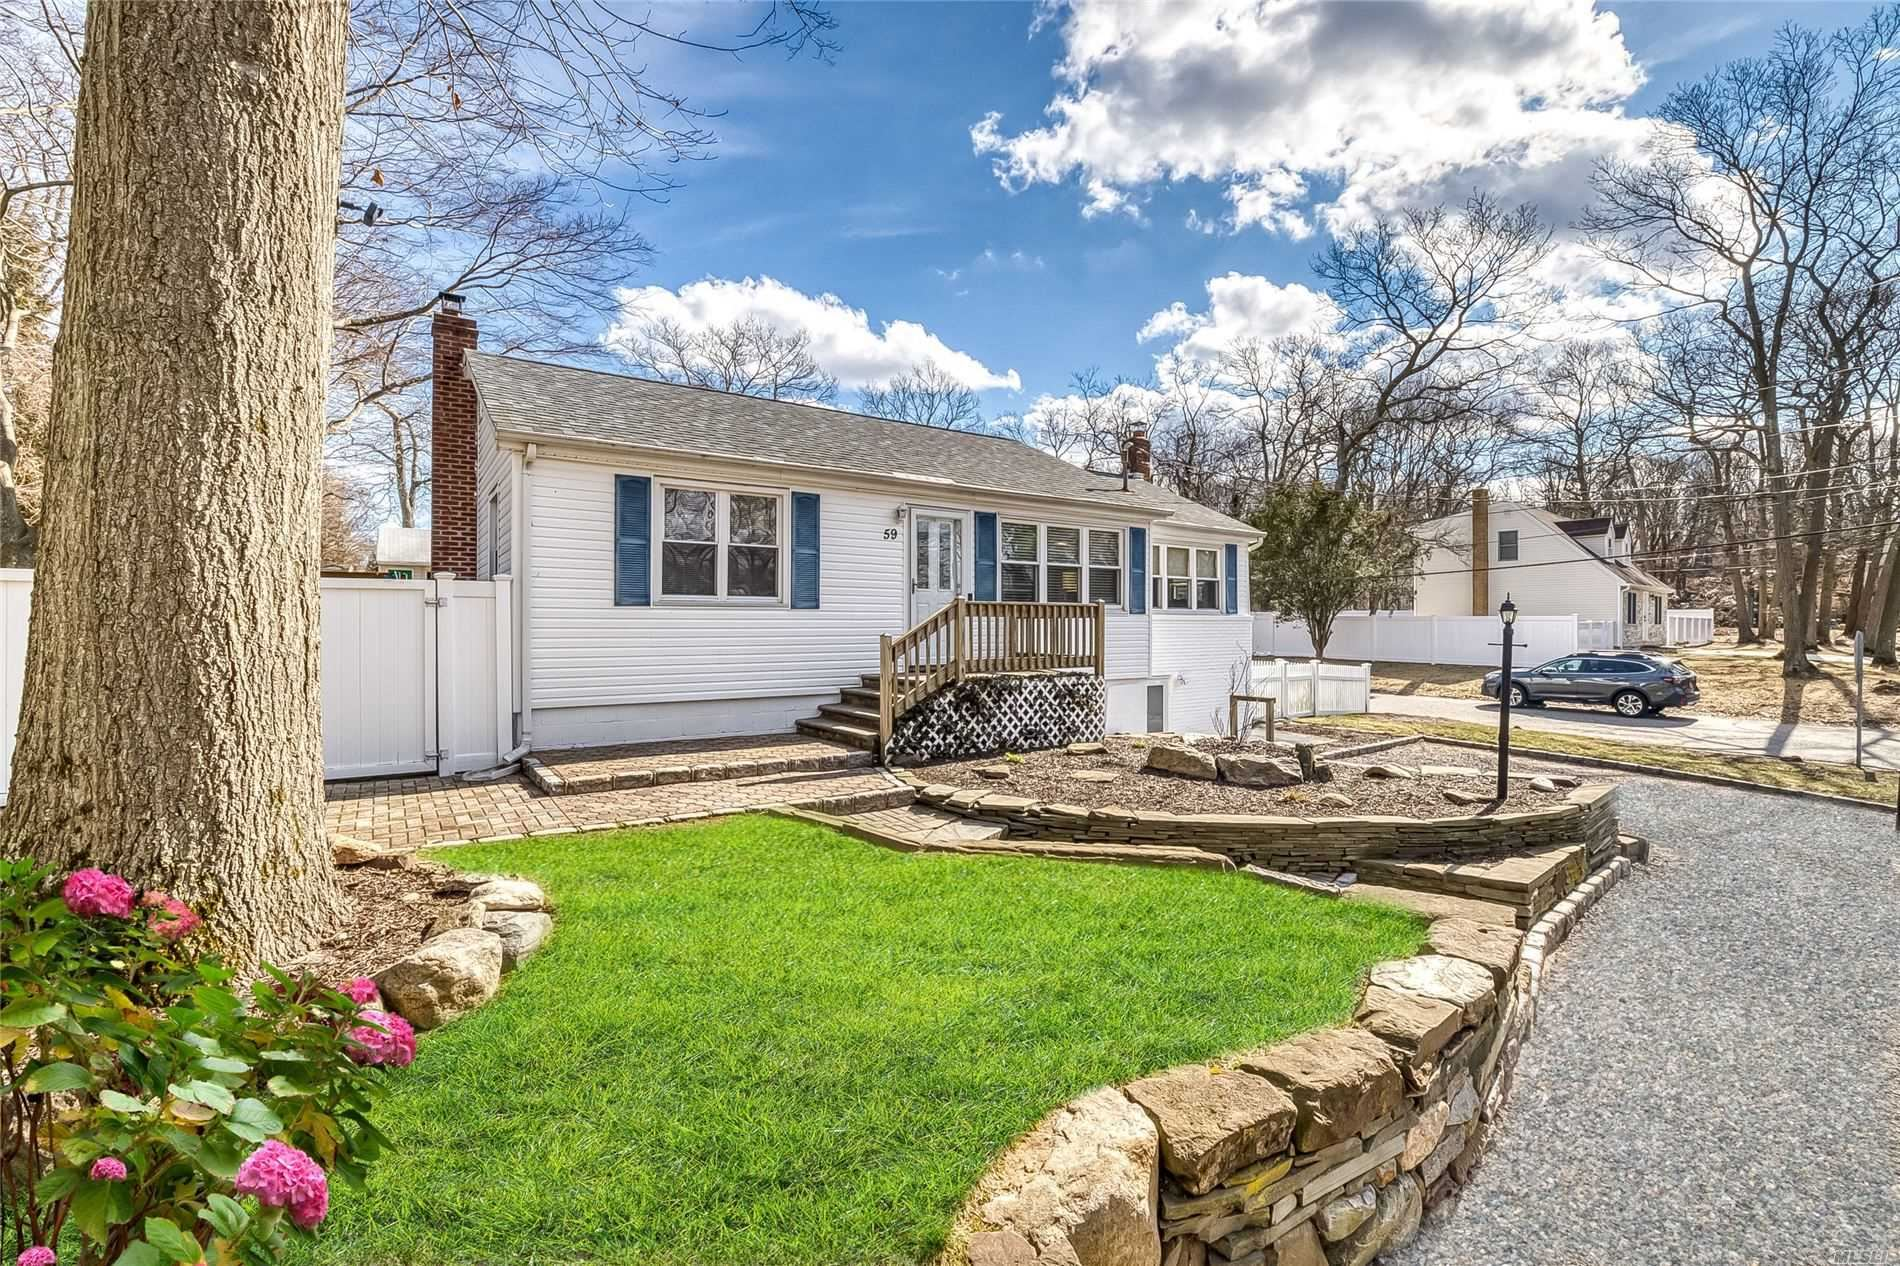 59 Maple Road, Rocky Point, NY 11778 - MLS#: 3204764